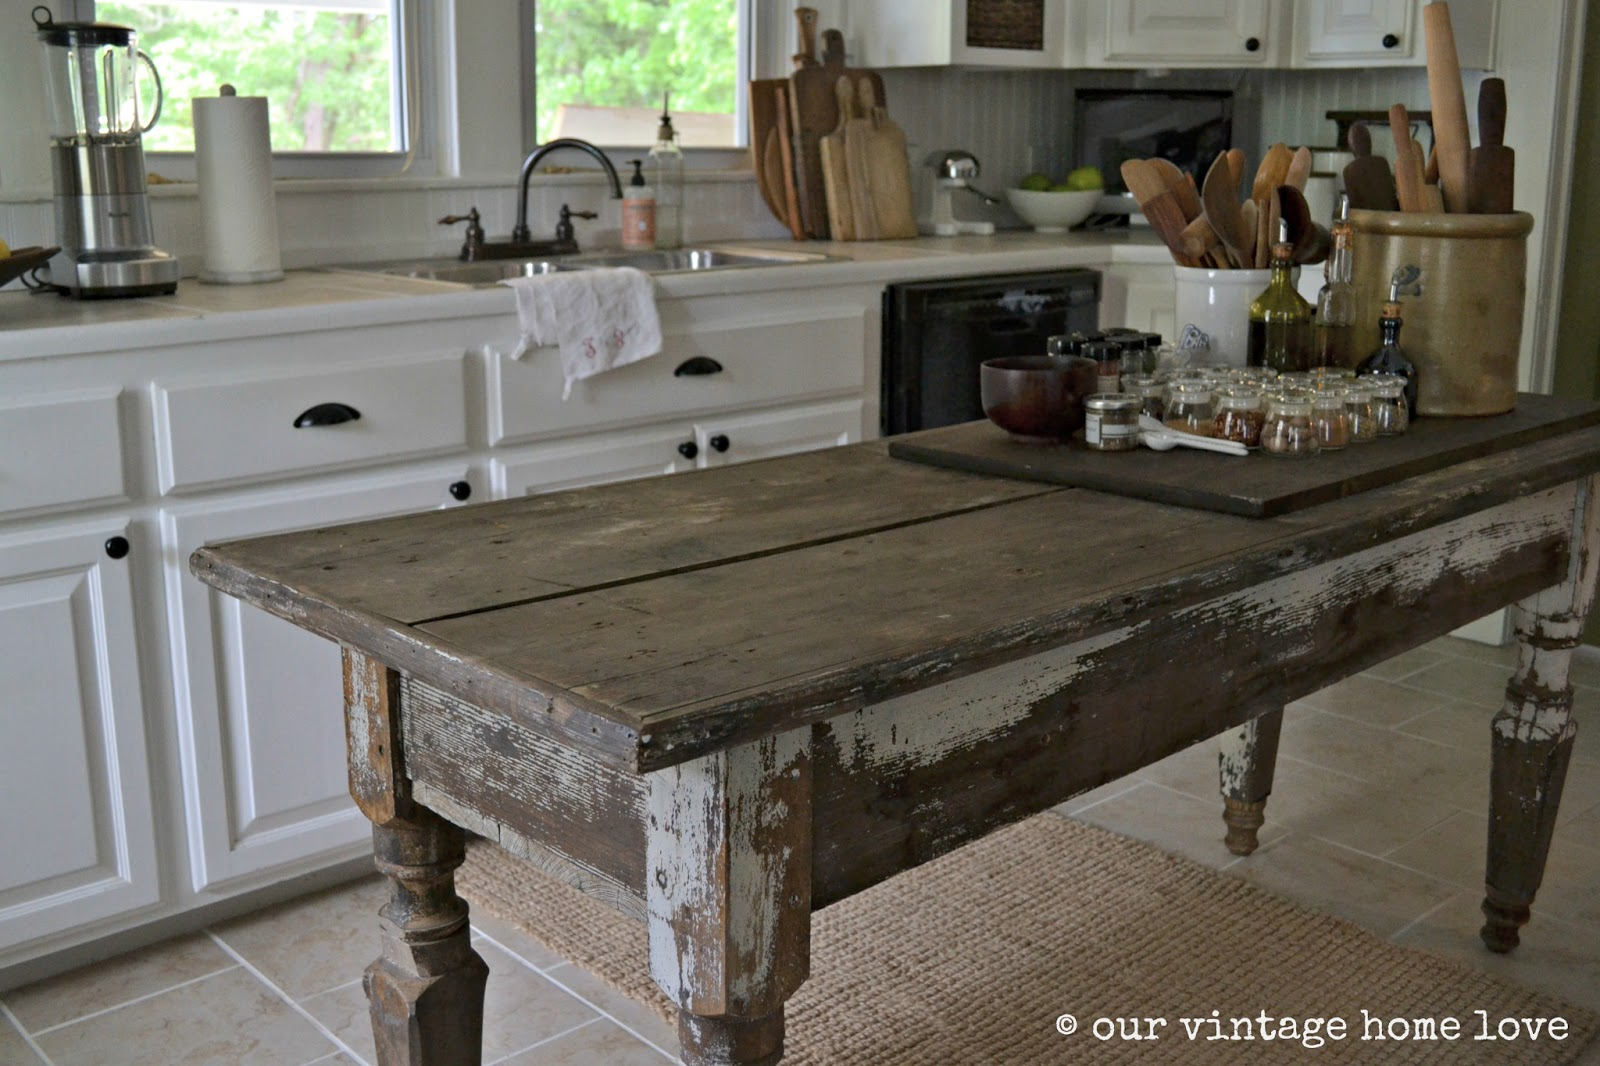 Farm House Kitchen Table Confidential Audiobook Vintage Home Love Farmhouse